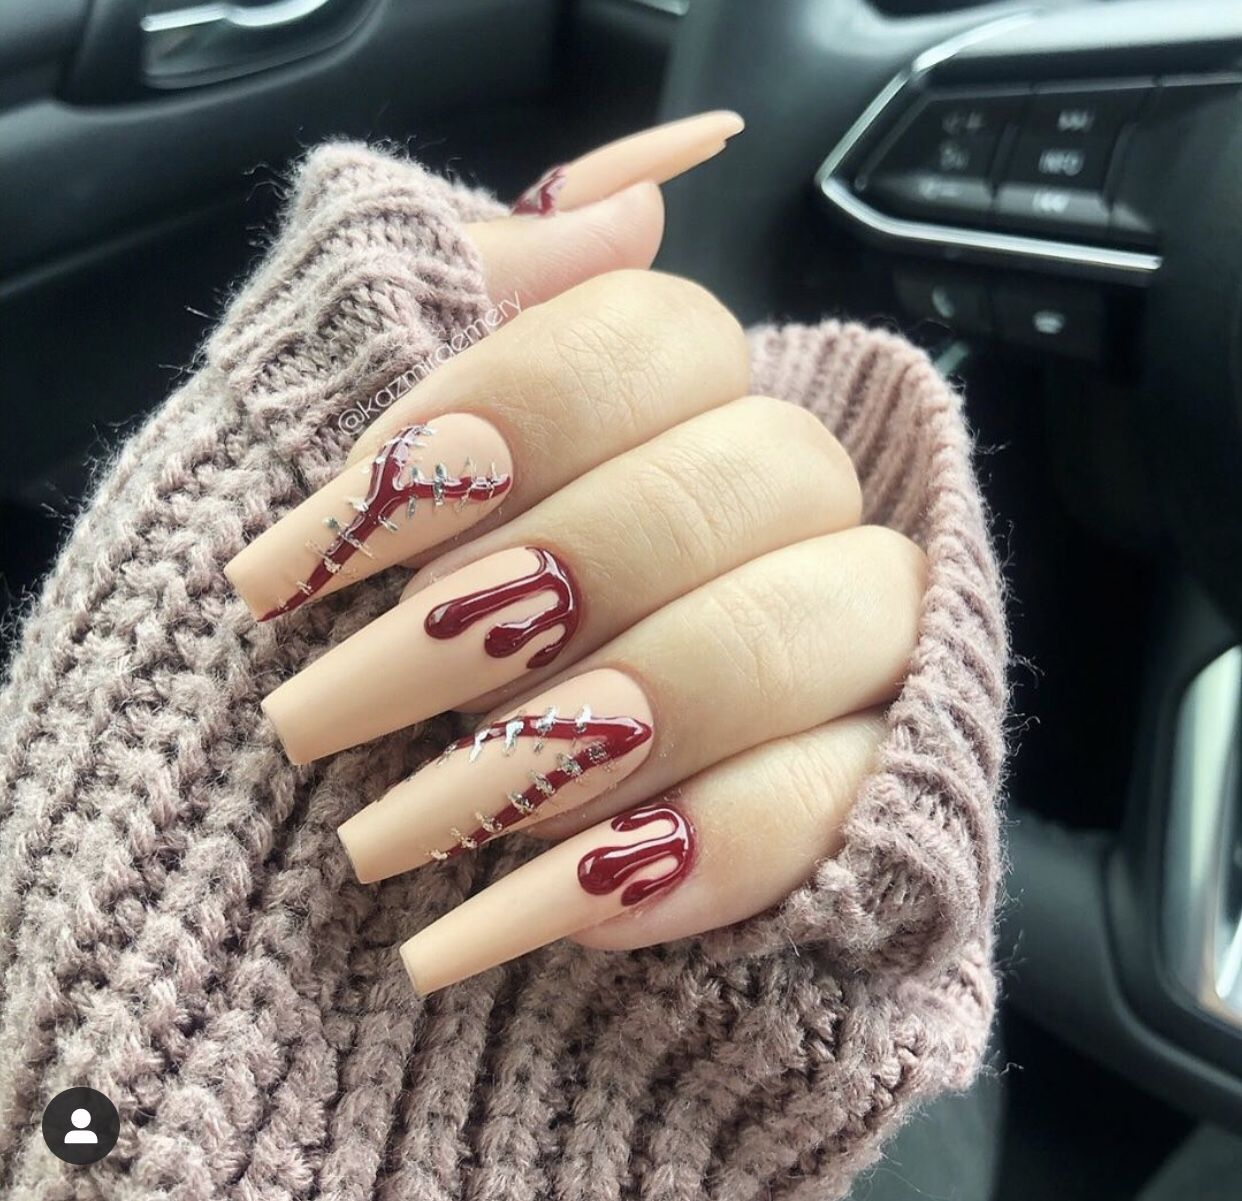 Pin by Ashley Floyd on Fall/Halloween | Halloween nails ...